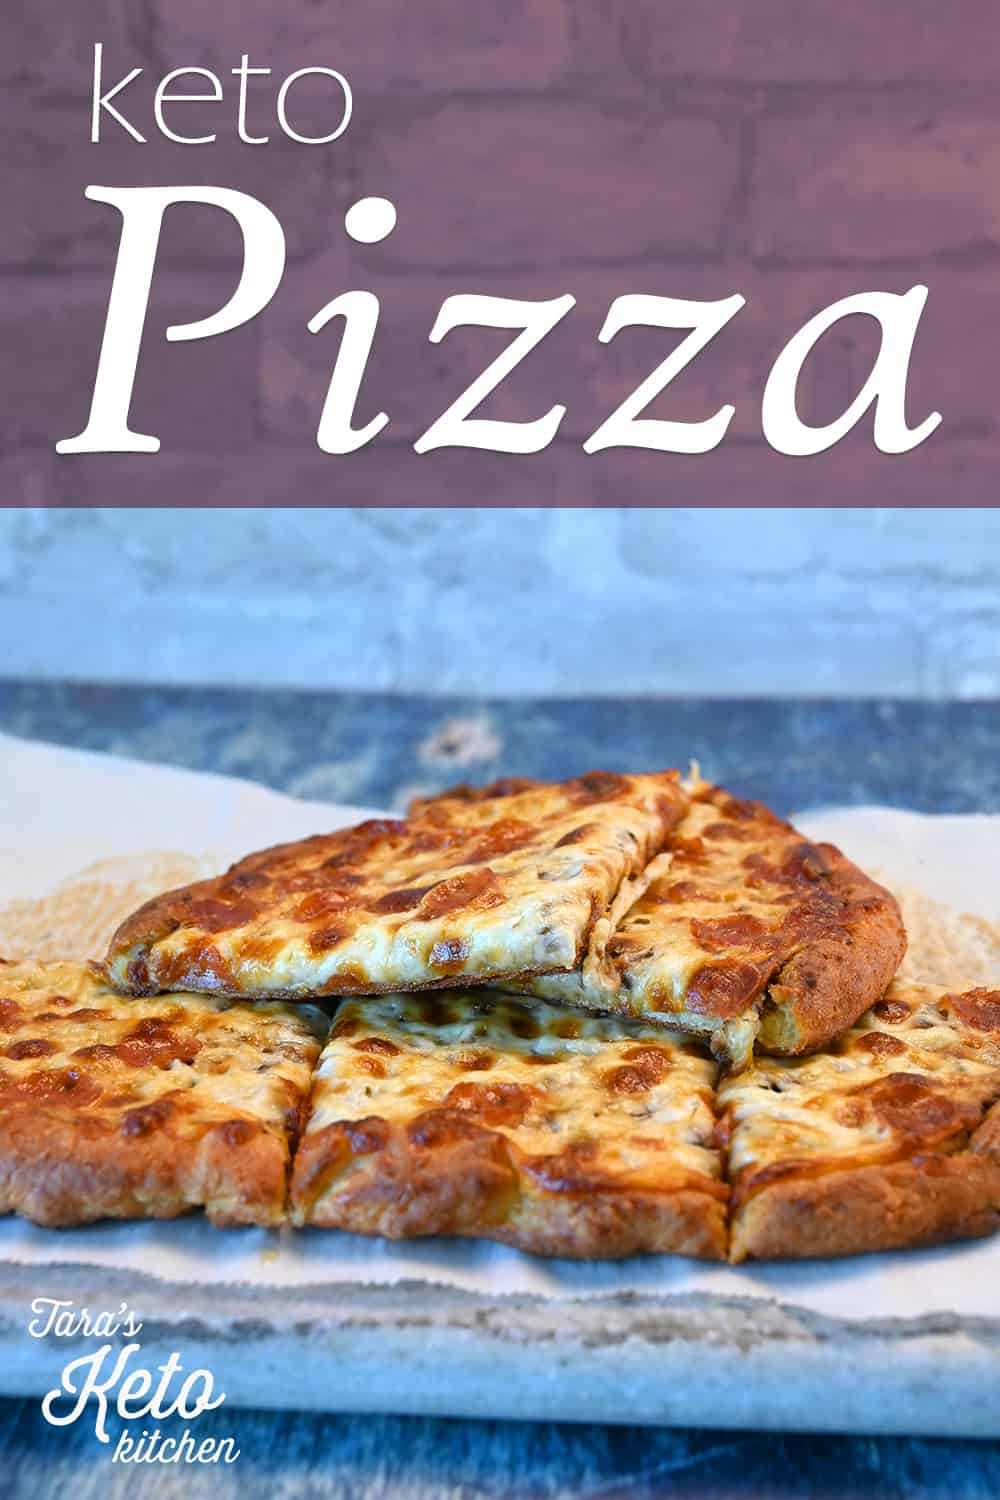 Keto Pizza with title